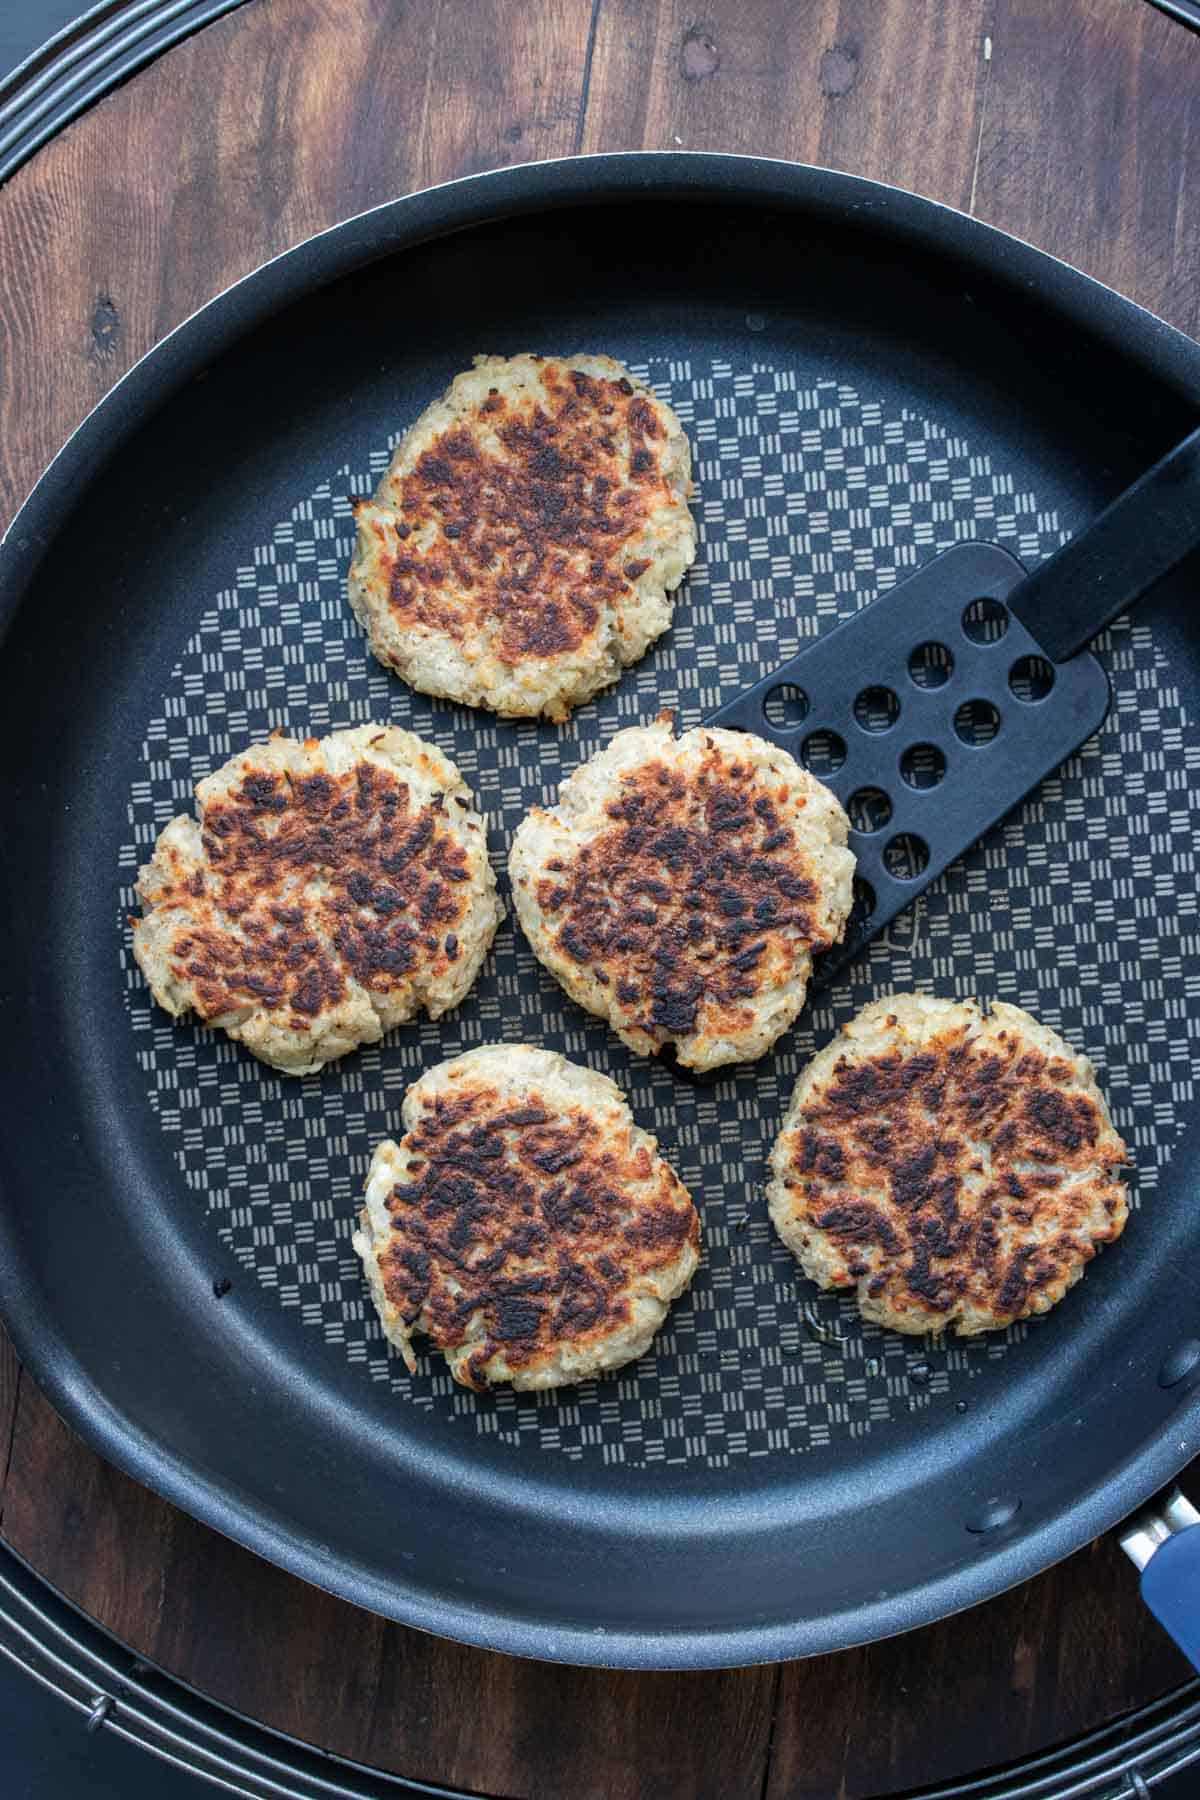 Potato pancakes being grilled on a pan